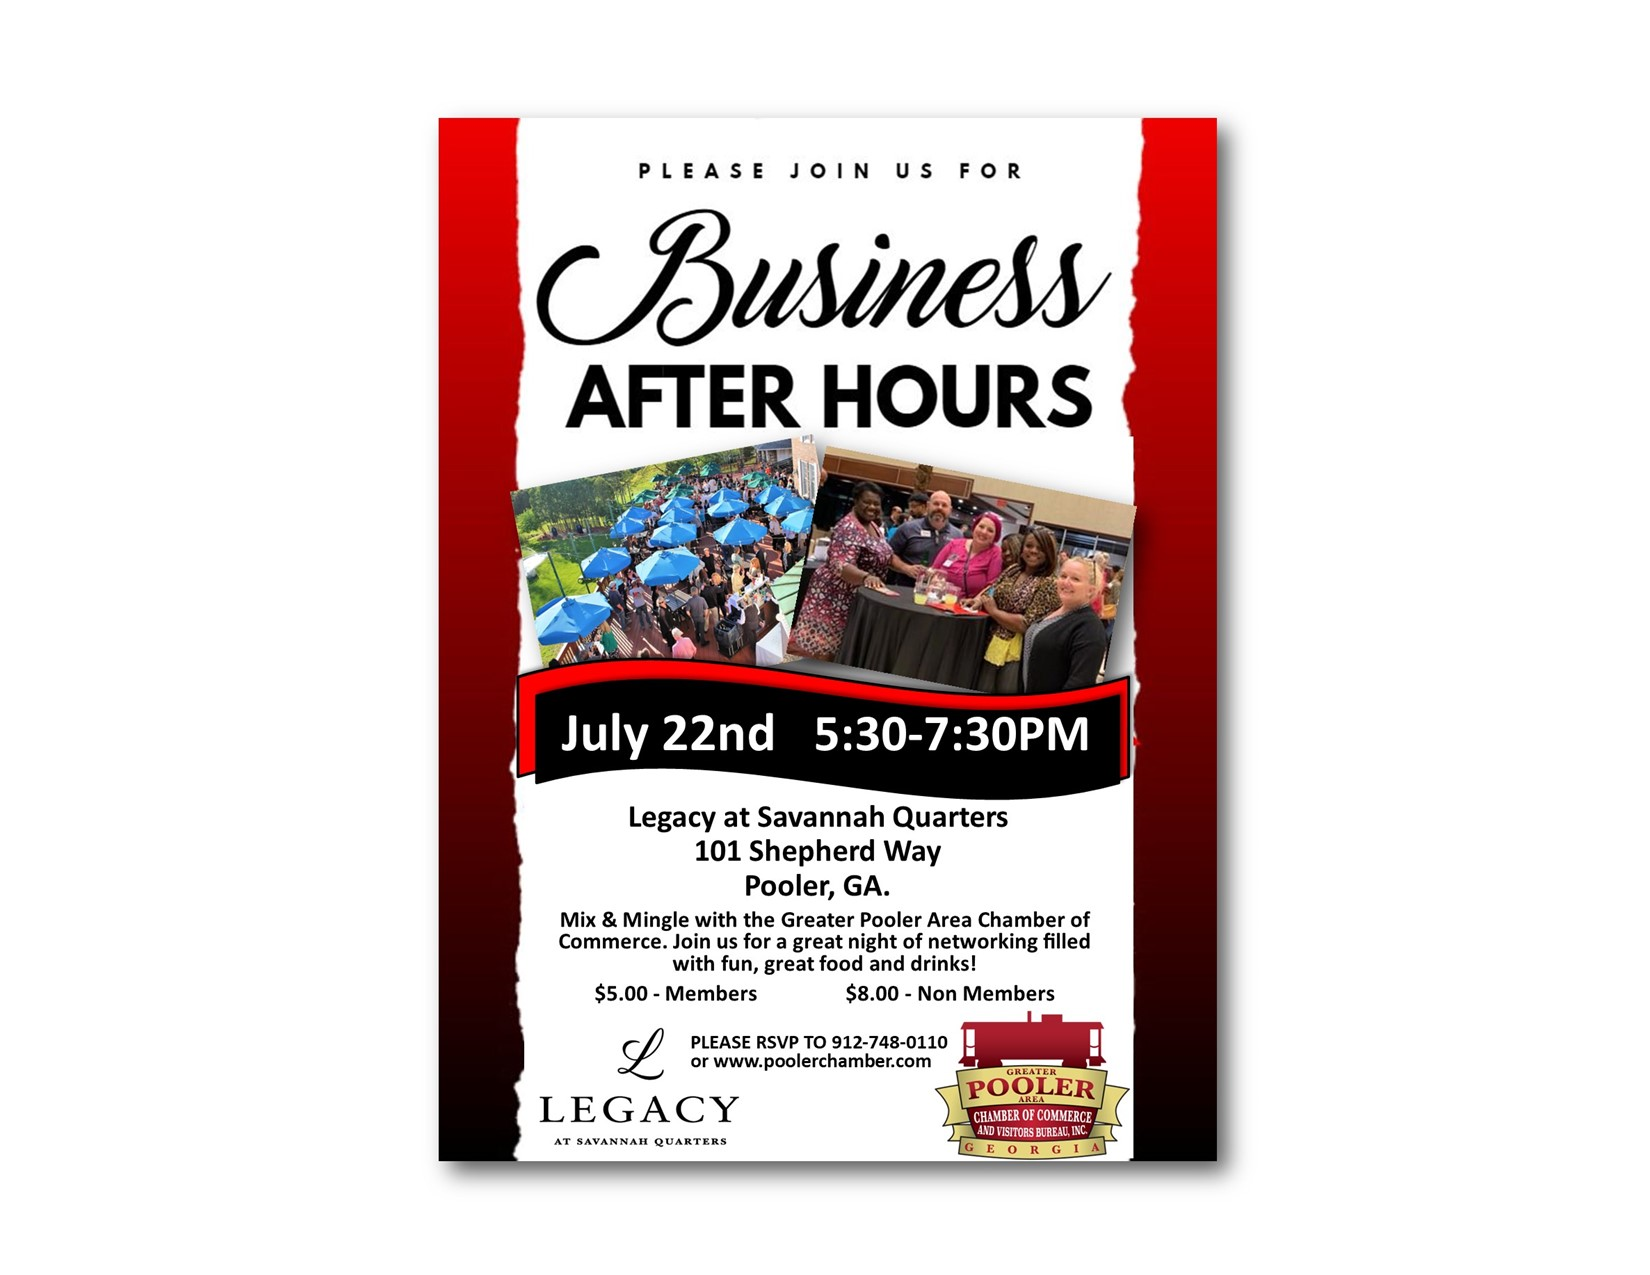 Business After Hours - Legacy at Savannah Quarters